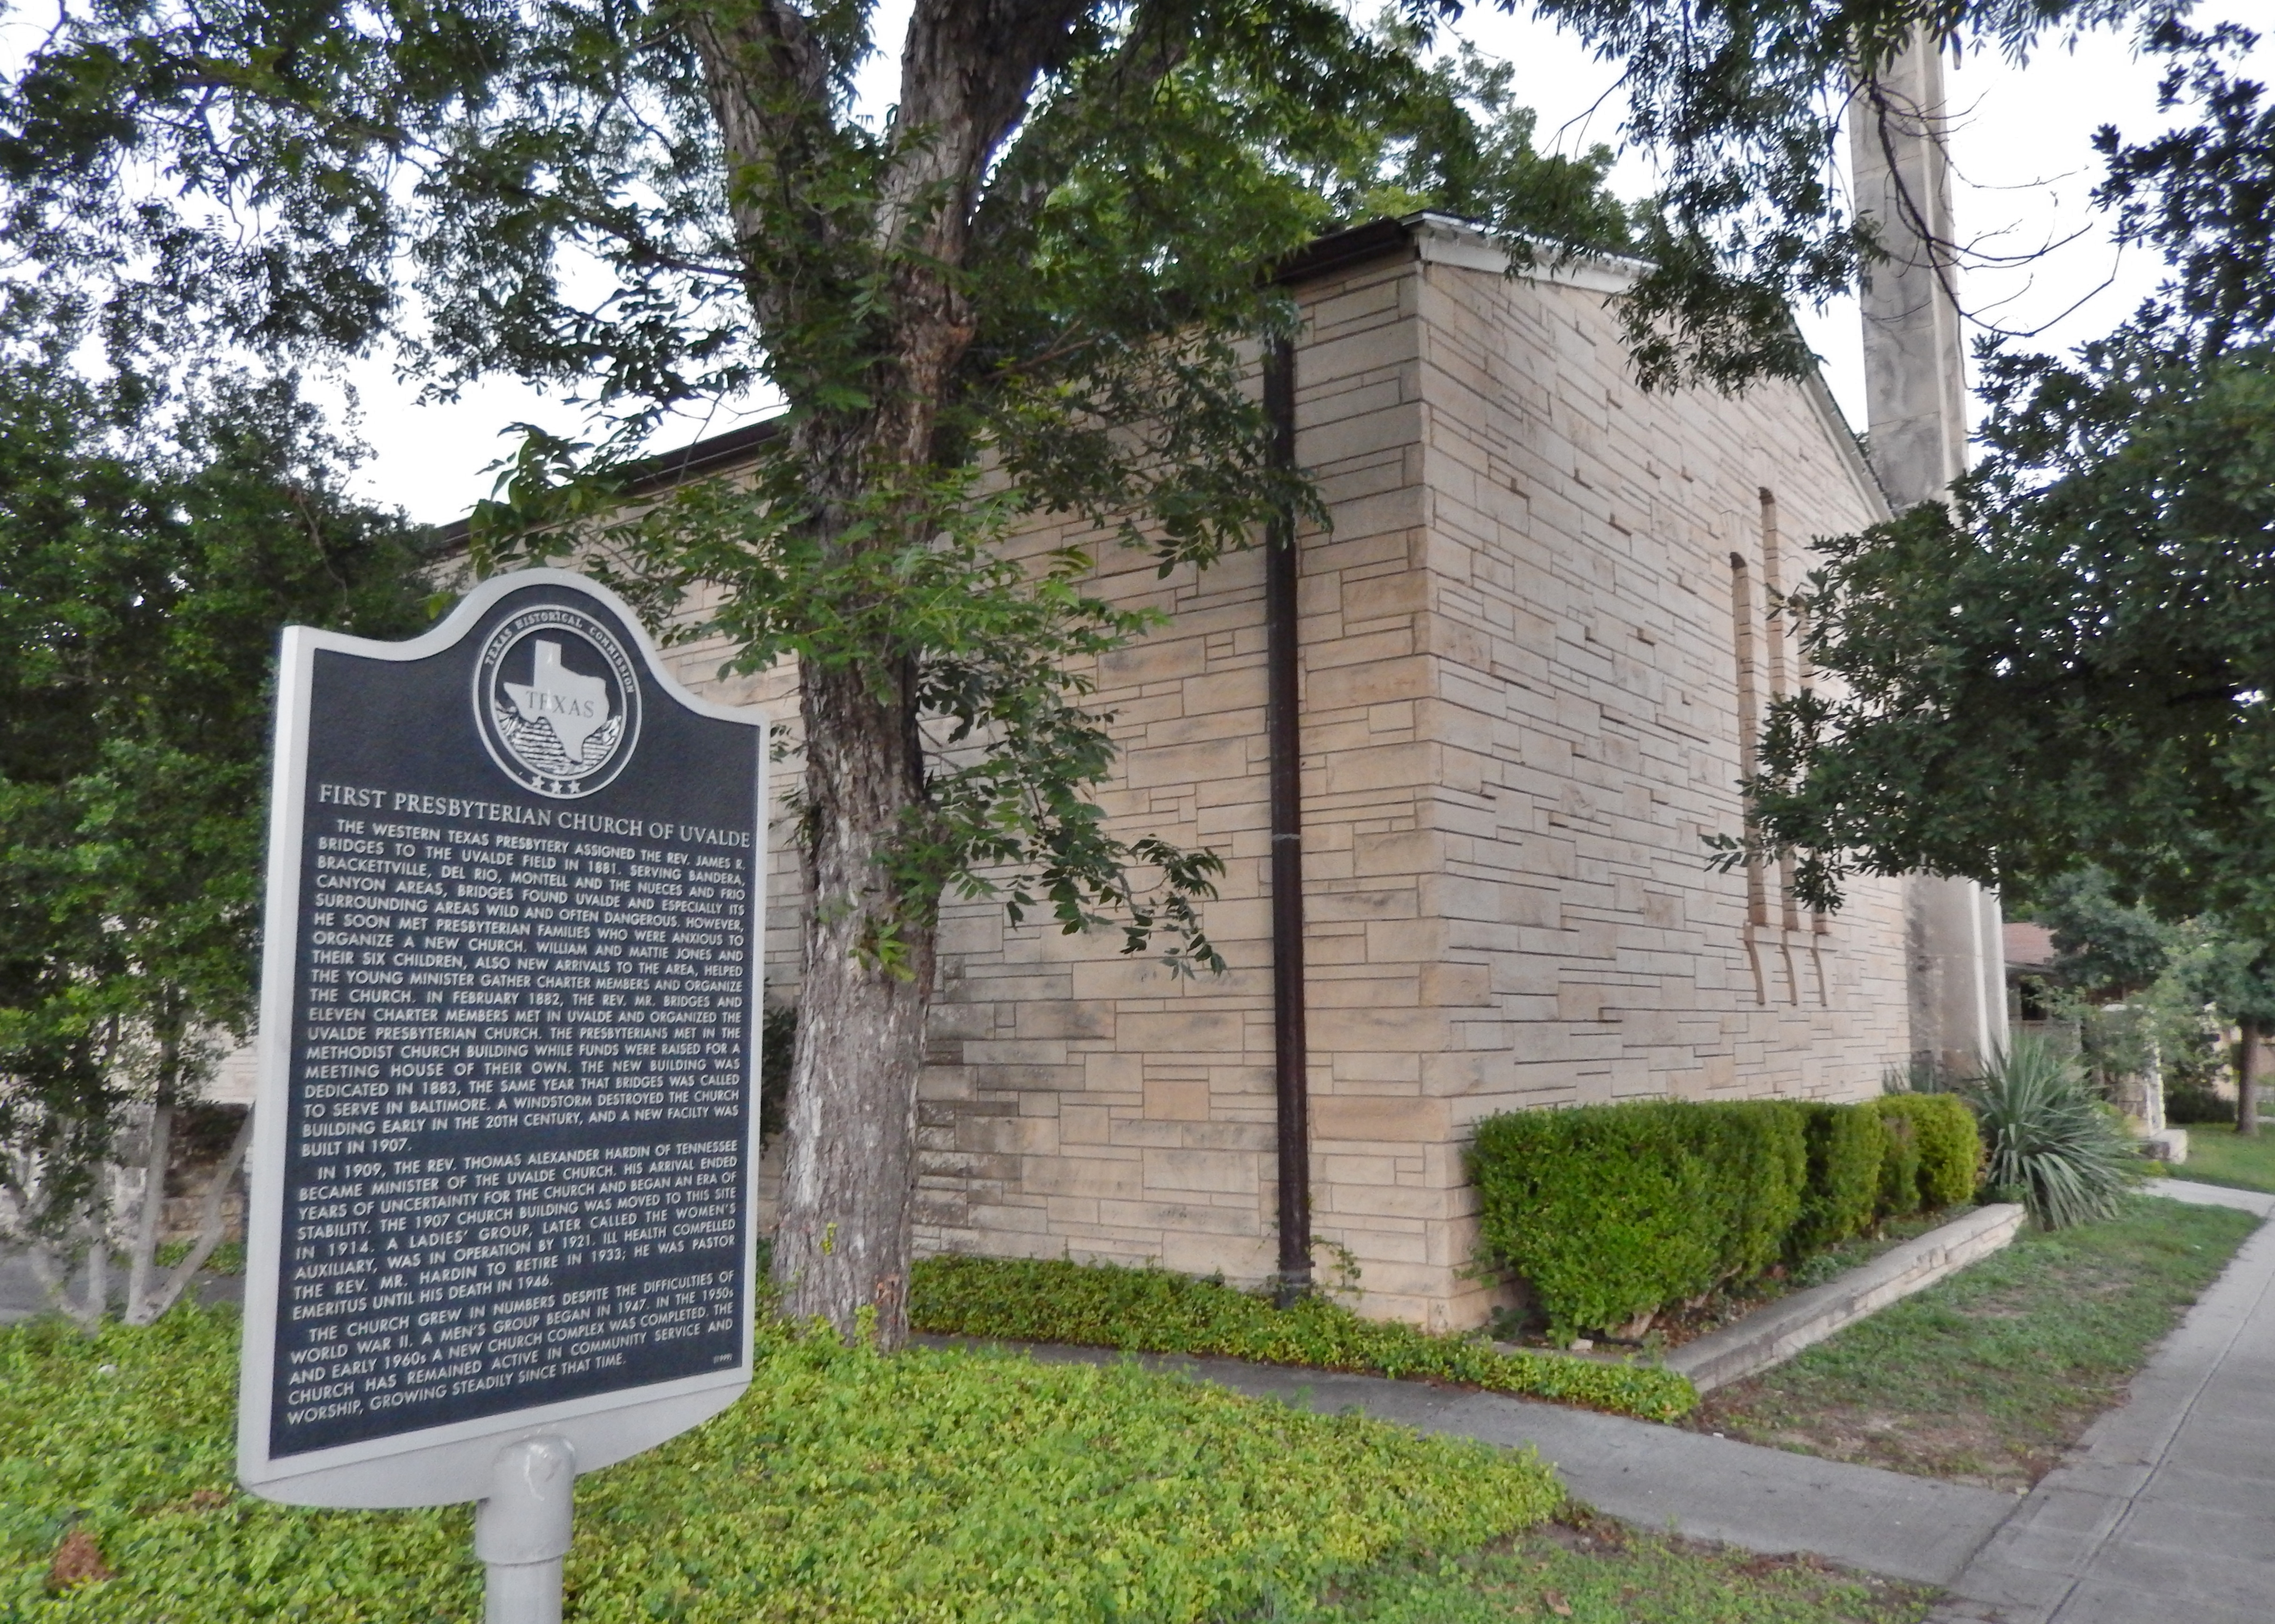 First Presbyterian Church of Uvalde Marker (<i>wide view</i>)